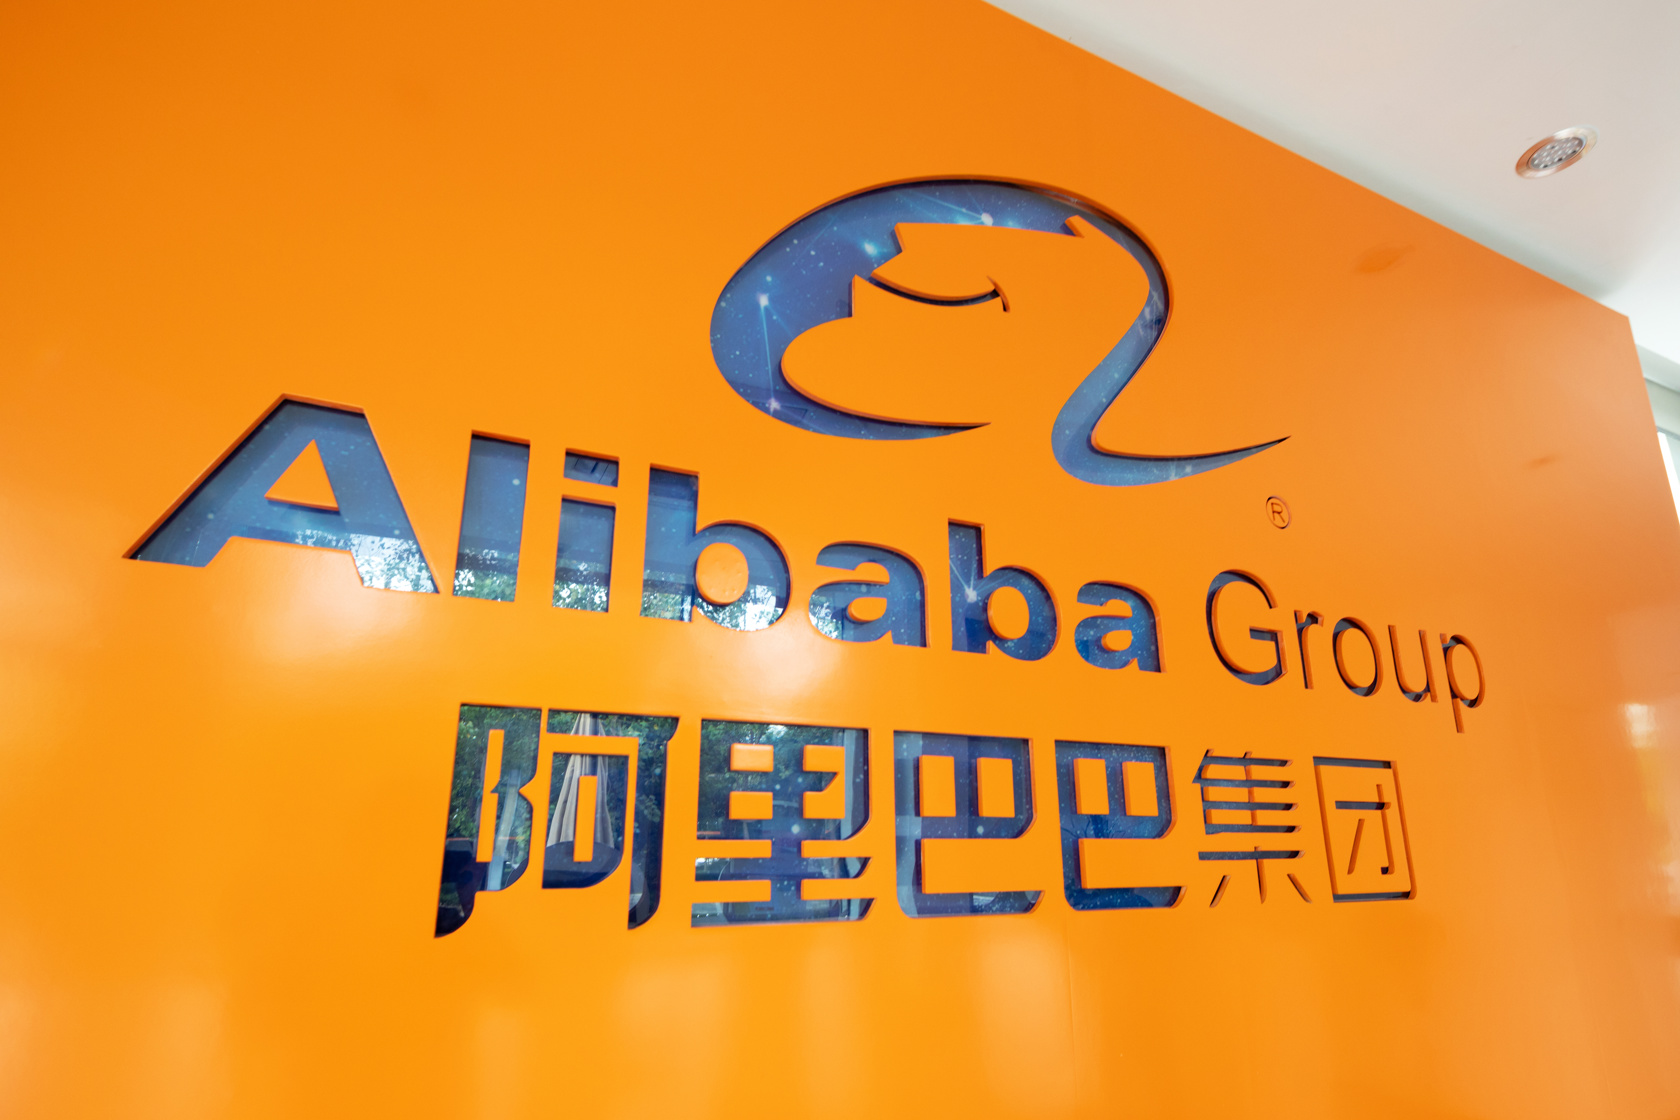 Alibaba stock, BABA stock news and analysis